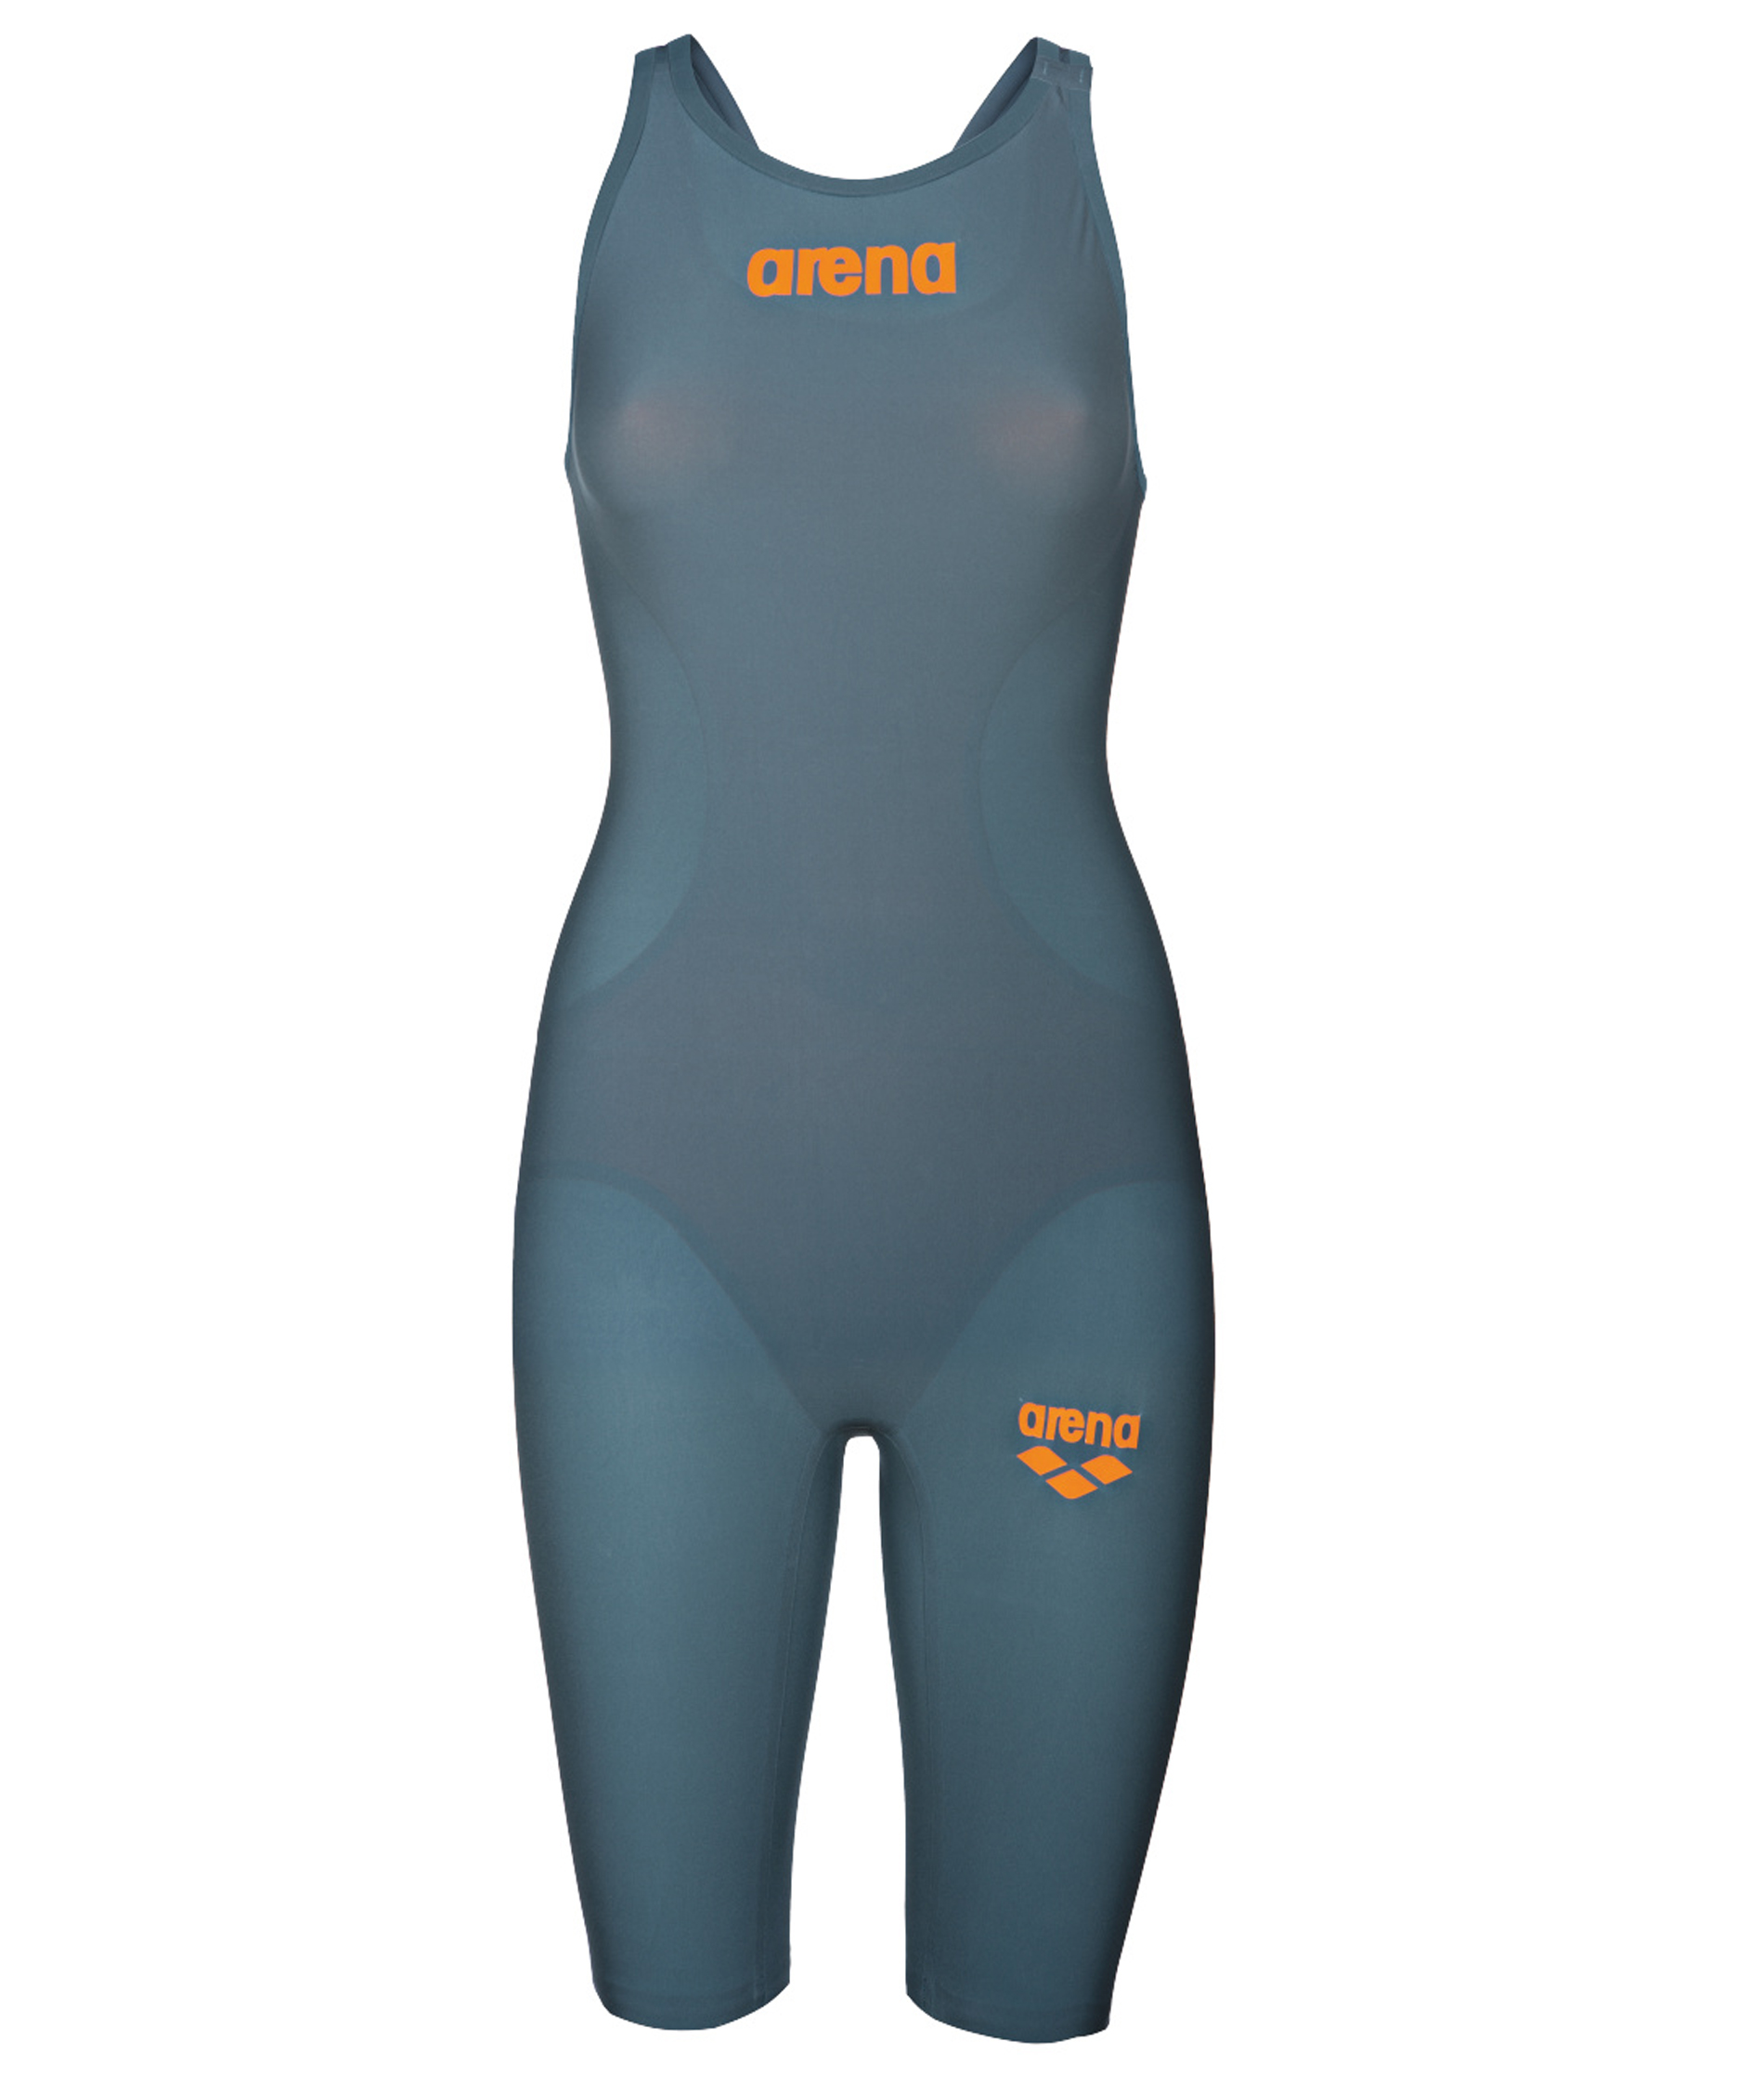 Arena Girls Powerskin R-EVO ONE Open Back Race Suit - Grey/Orange